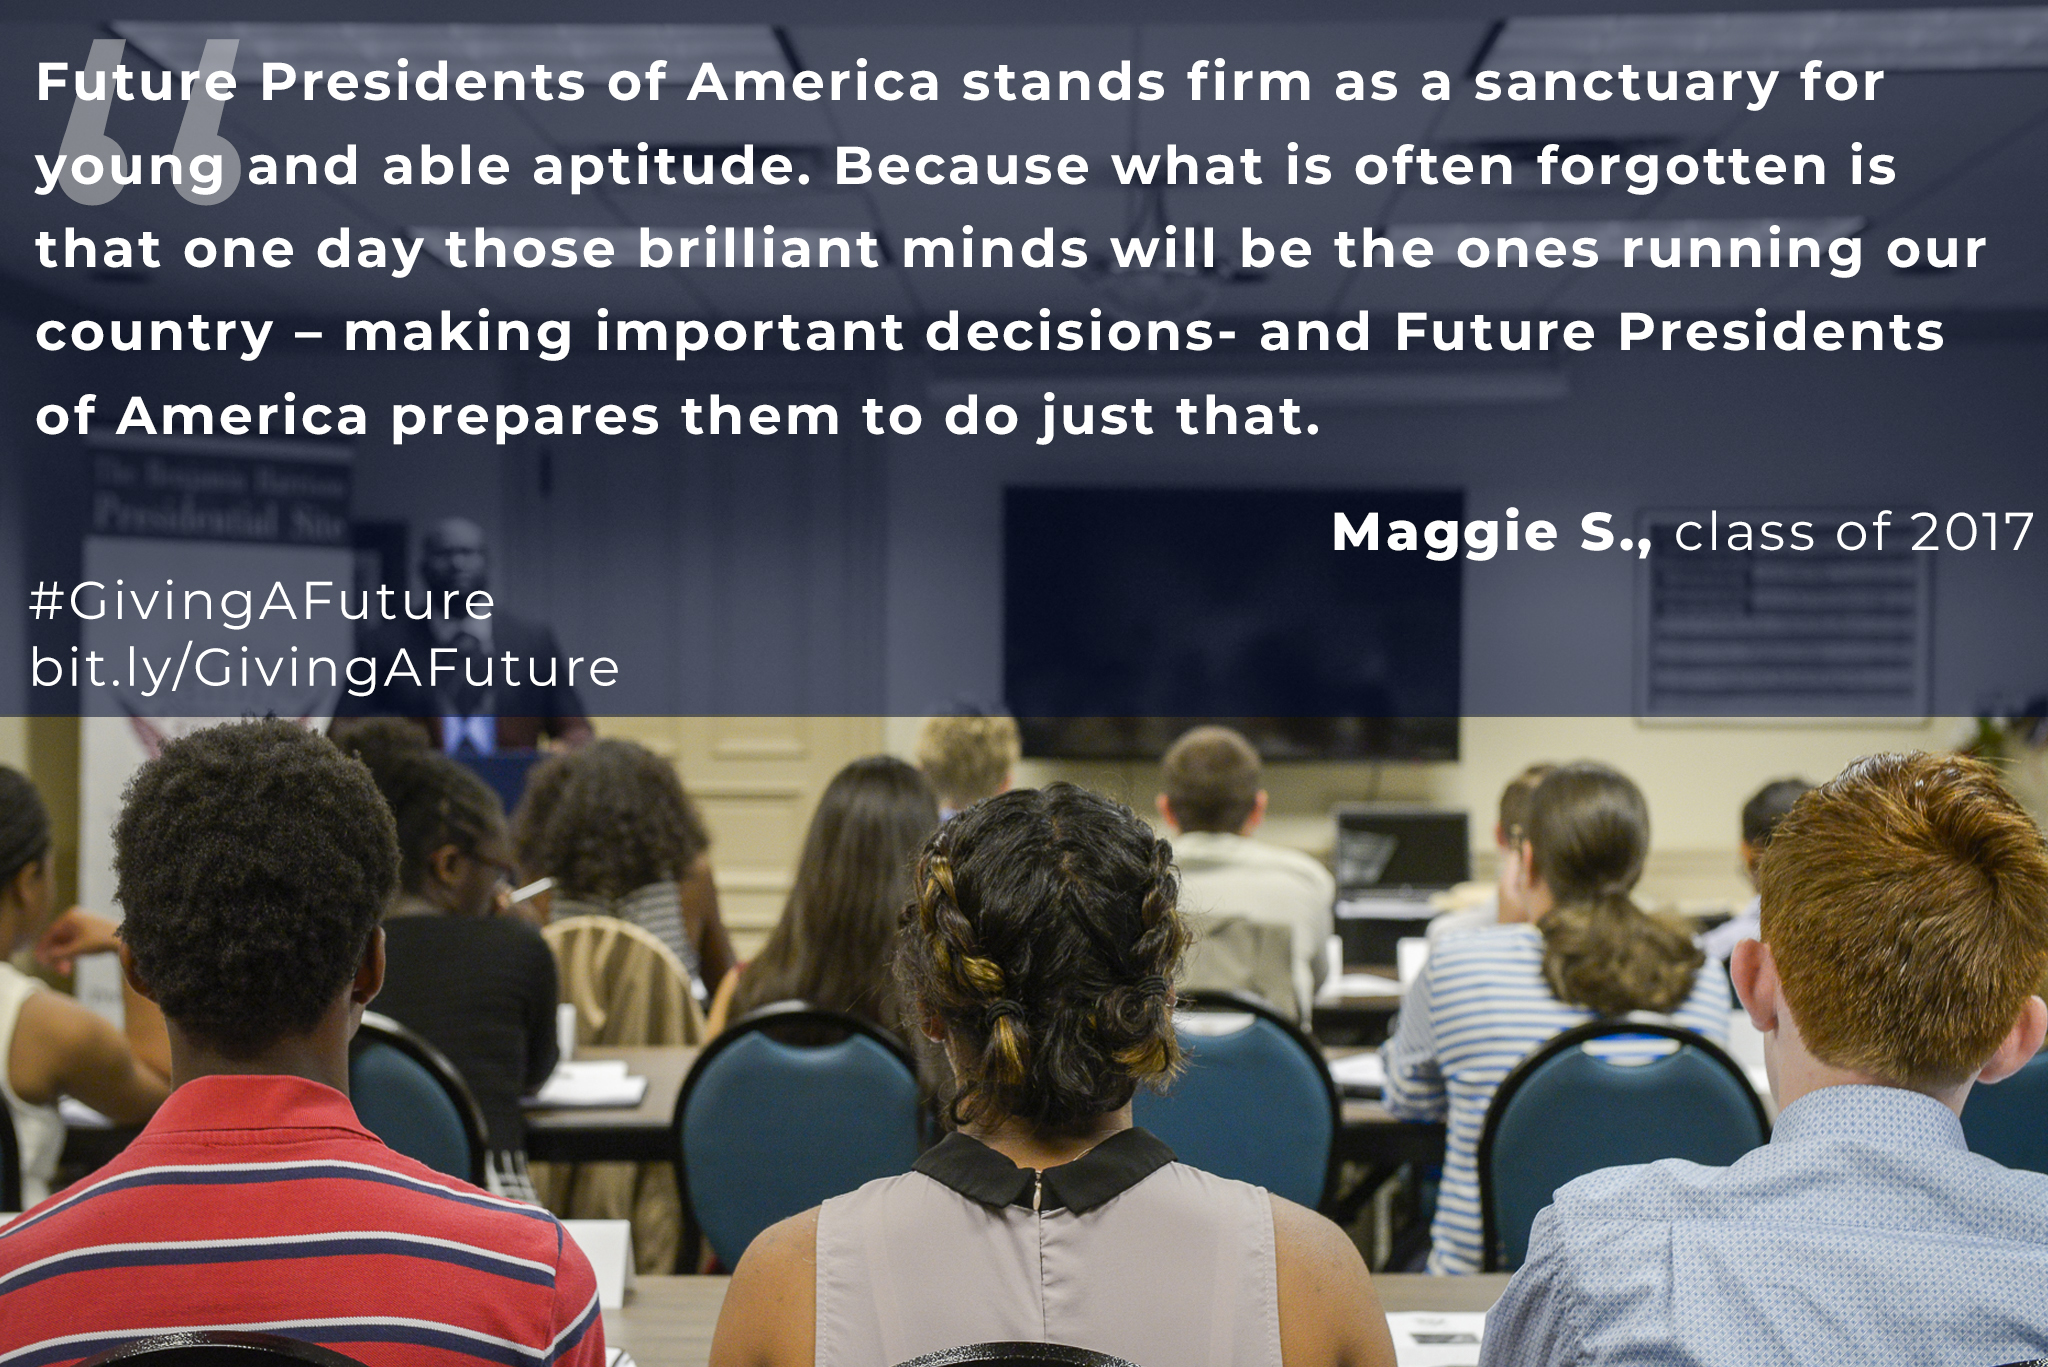 "Photograph of a group of students in a classroom. The image is overlaid with a quote from Maggie S., of the class of 2017, which reads, ""Future presidents of america stands firm as a sanctuary for young and able aptitude. Because what is often forgotten is that one day those brilliant minds will be the ones running our country - making important decisions - and future presidents of america prepares them to do just that. Hash tag giving a future. bit dot l.y. forward slash giving a future."